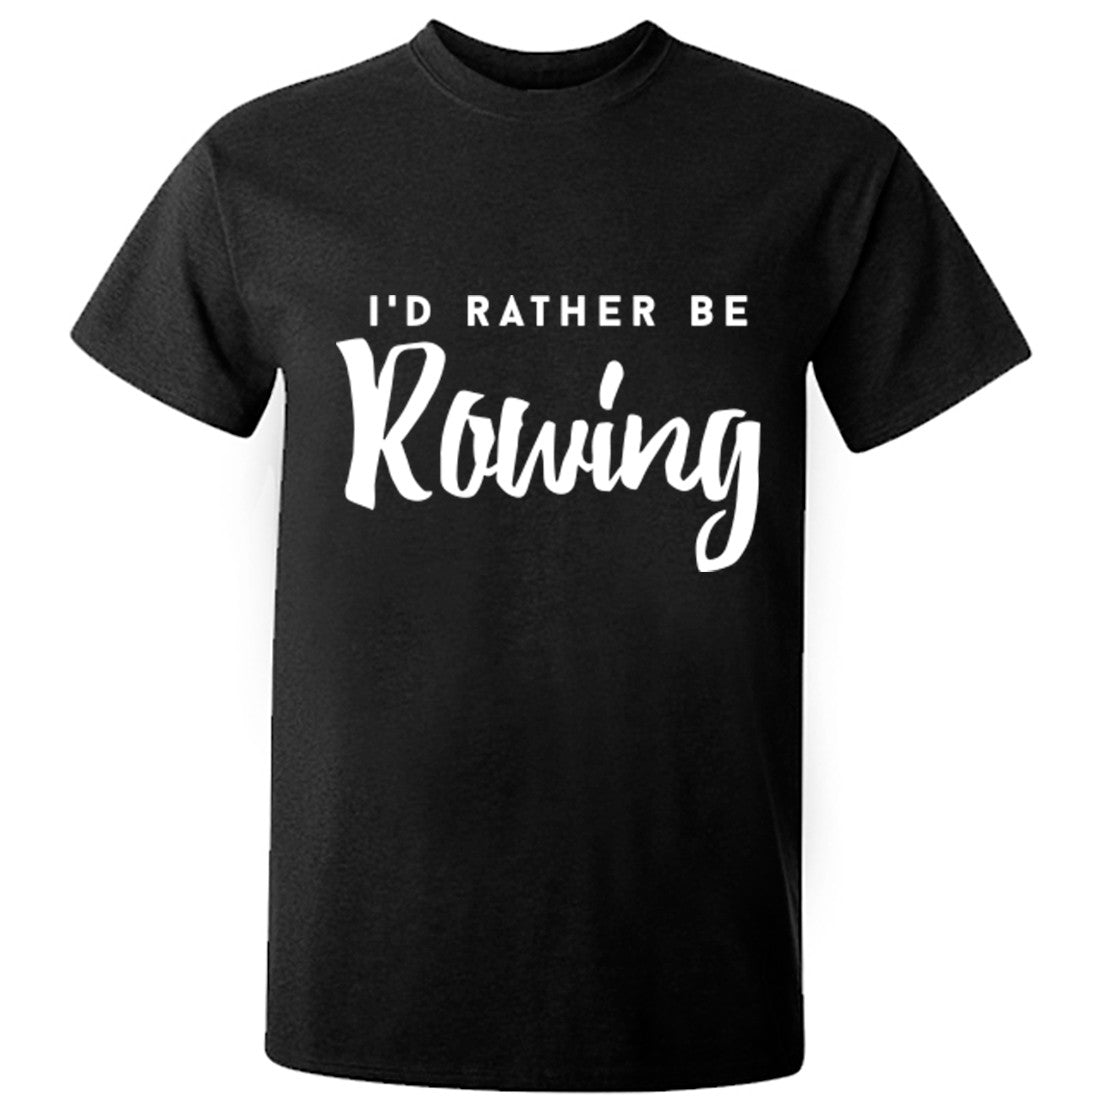 I'd Rather Be Rowing unisex t-shirt K0223 - Illustrated Identity Ltd.